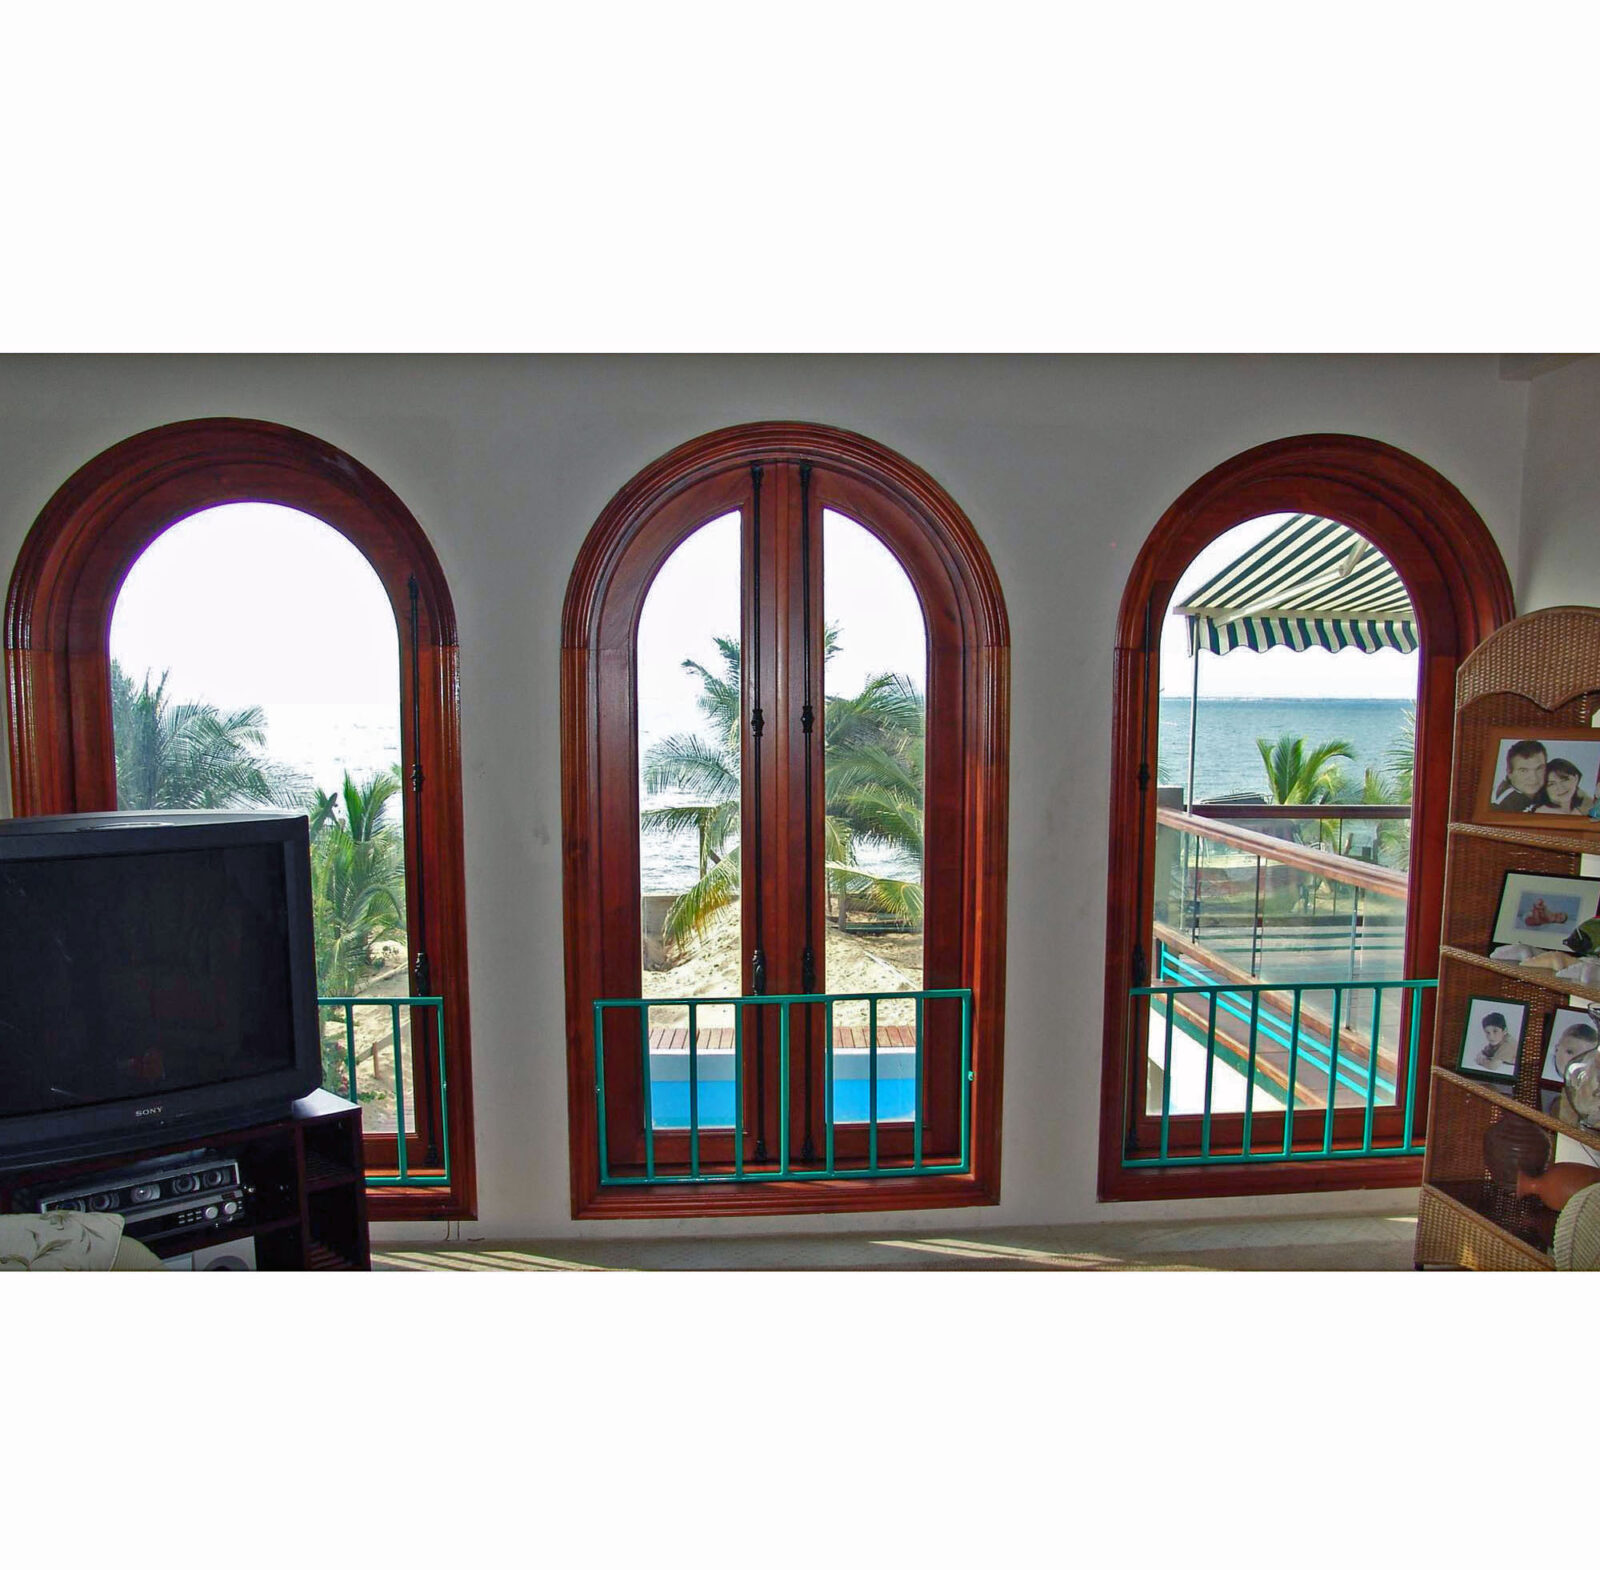 TRUJILLO ARCH WINDOWS